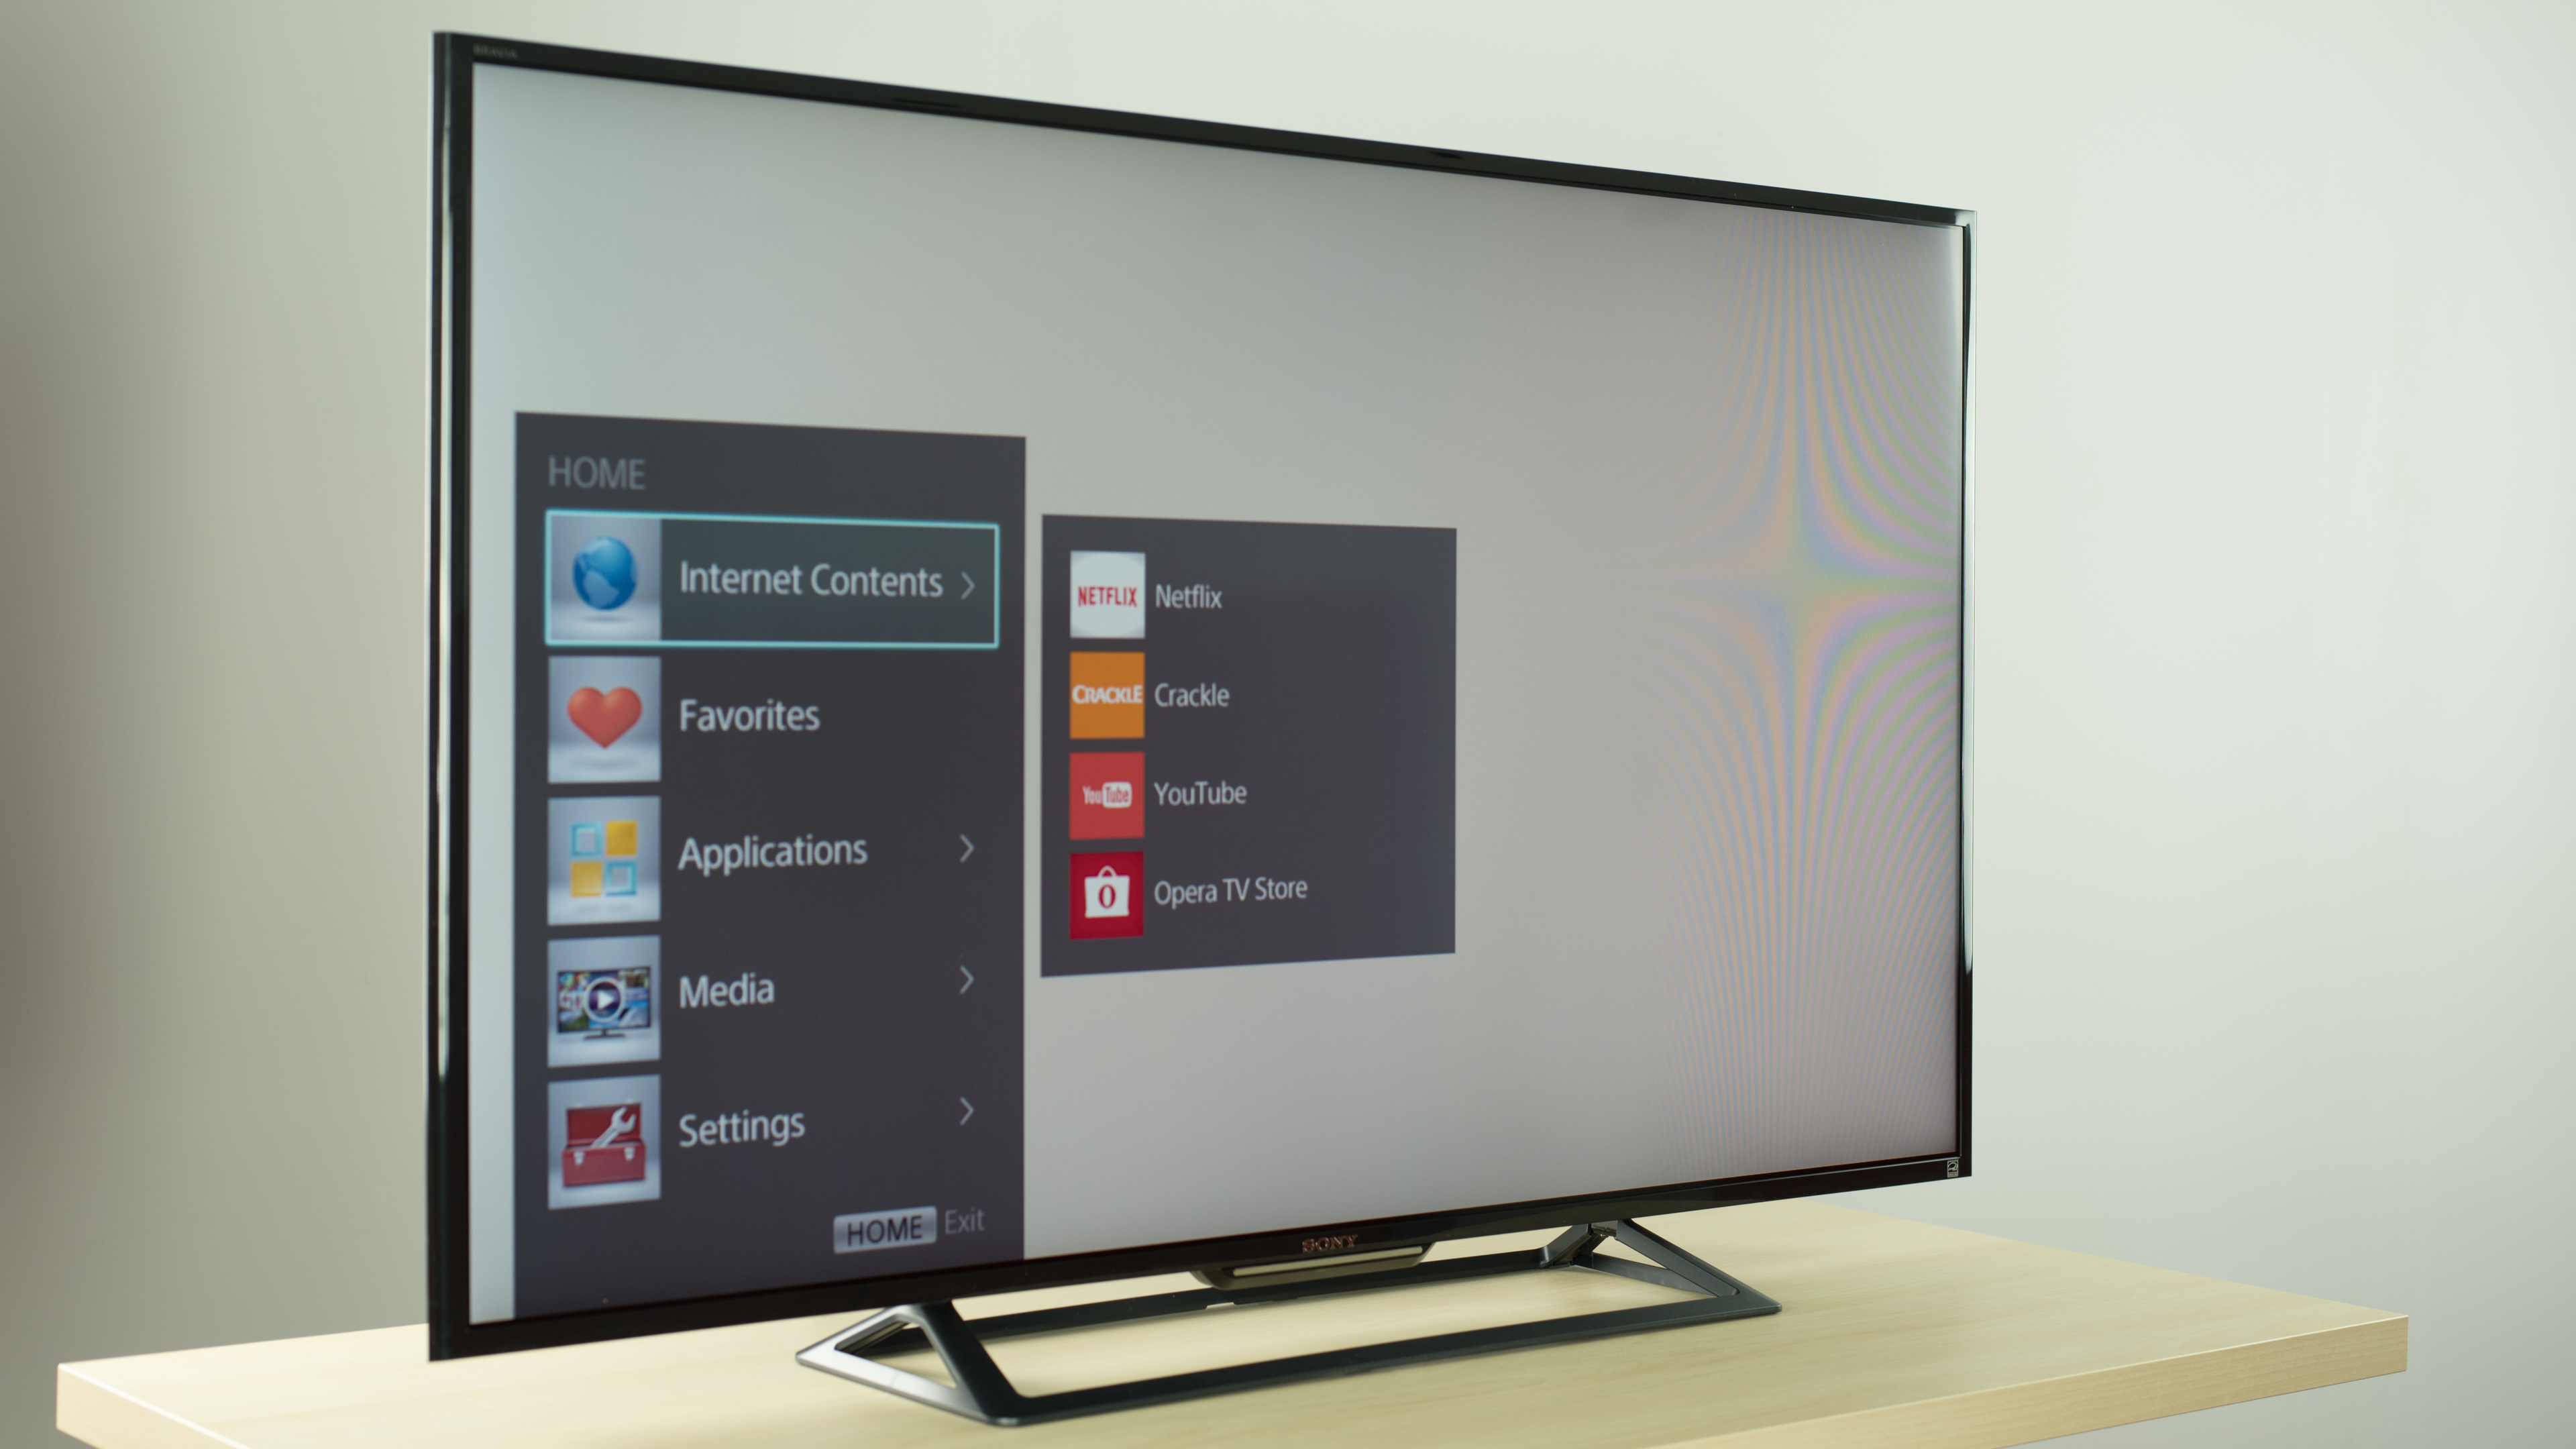 40 Inch Smart Tv Deals Sony R510c Review Kdl40r510c Kdl48r510c Rtings